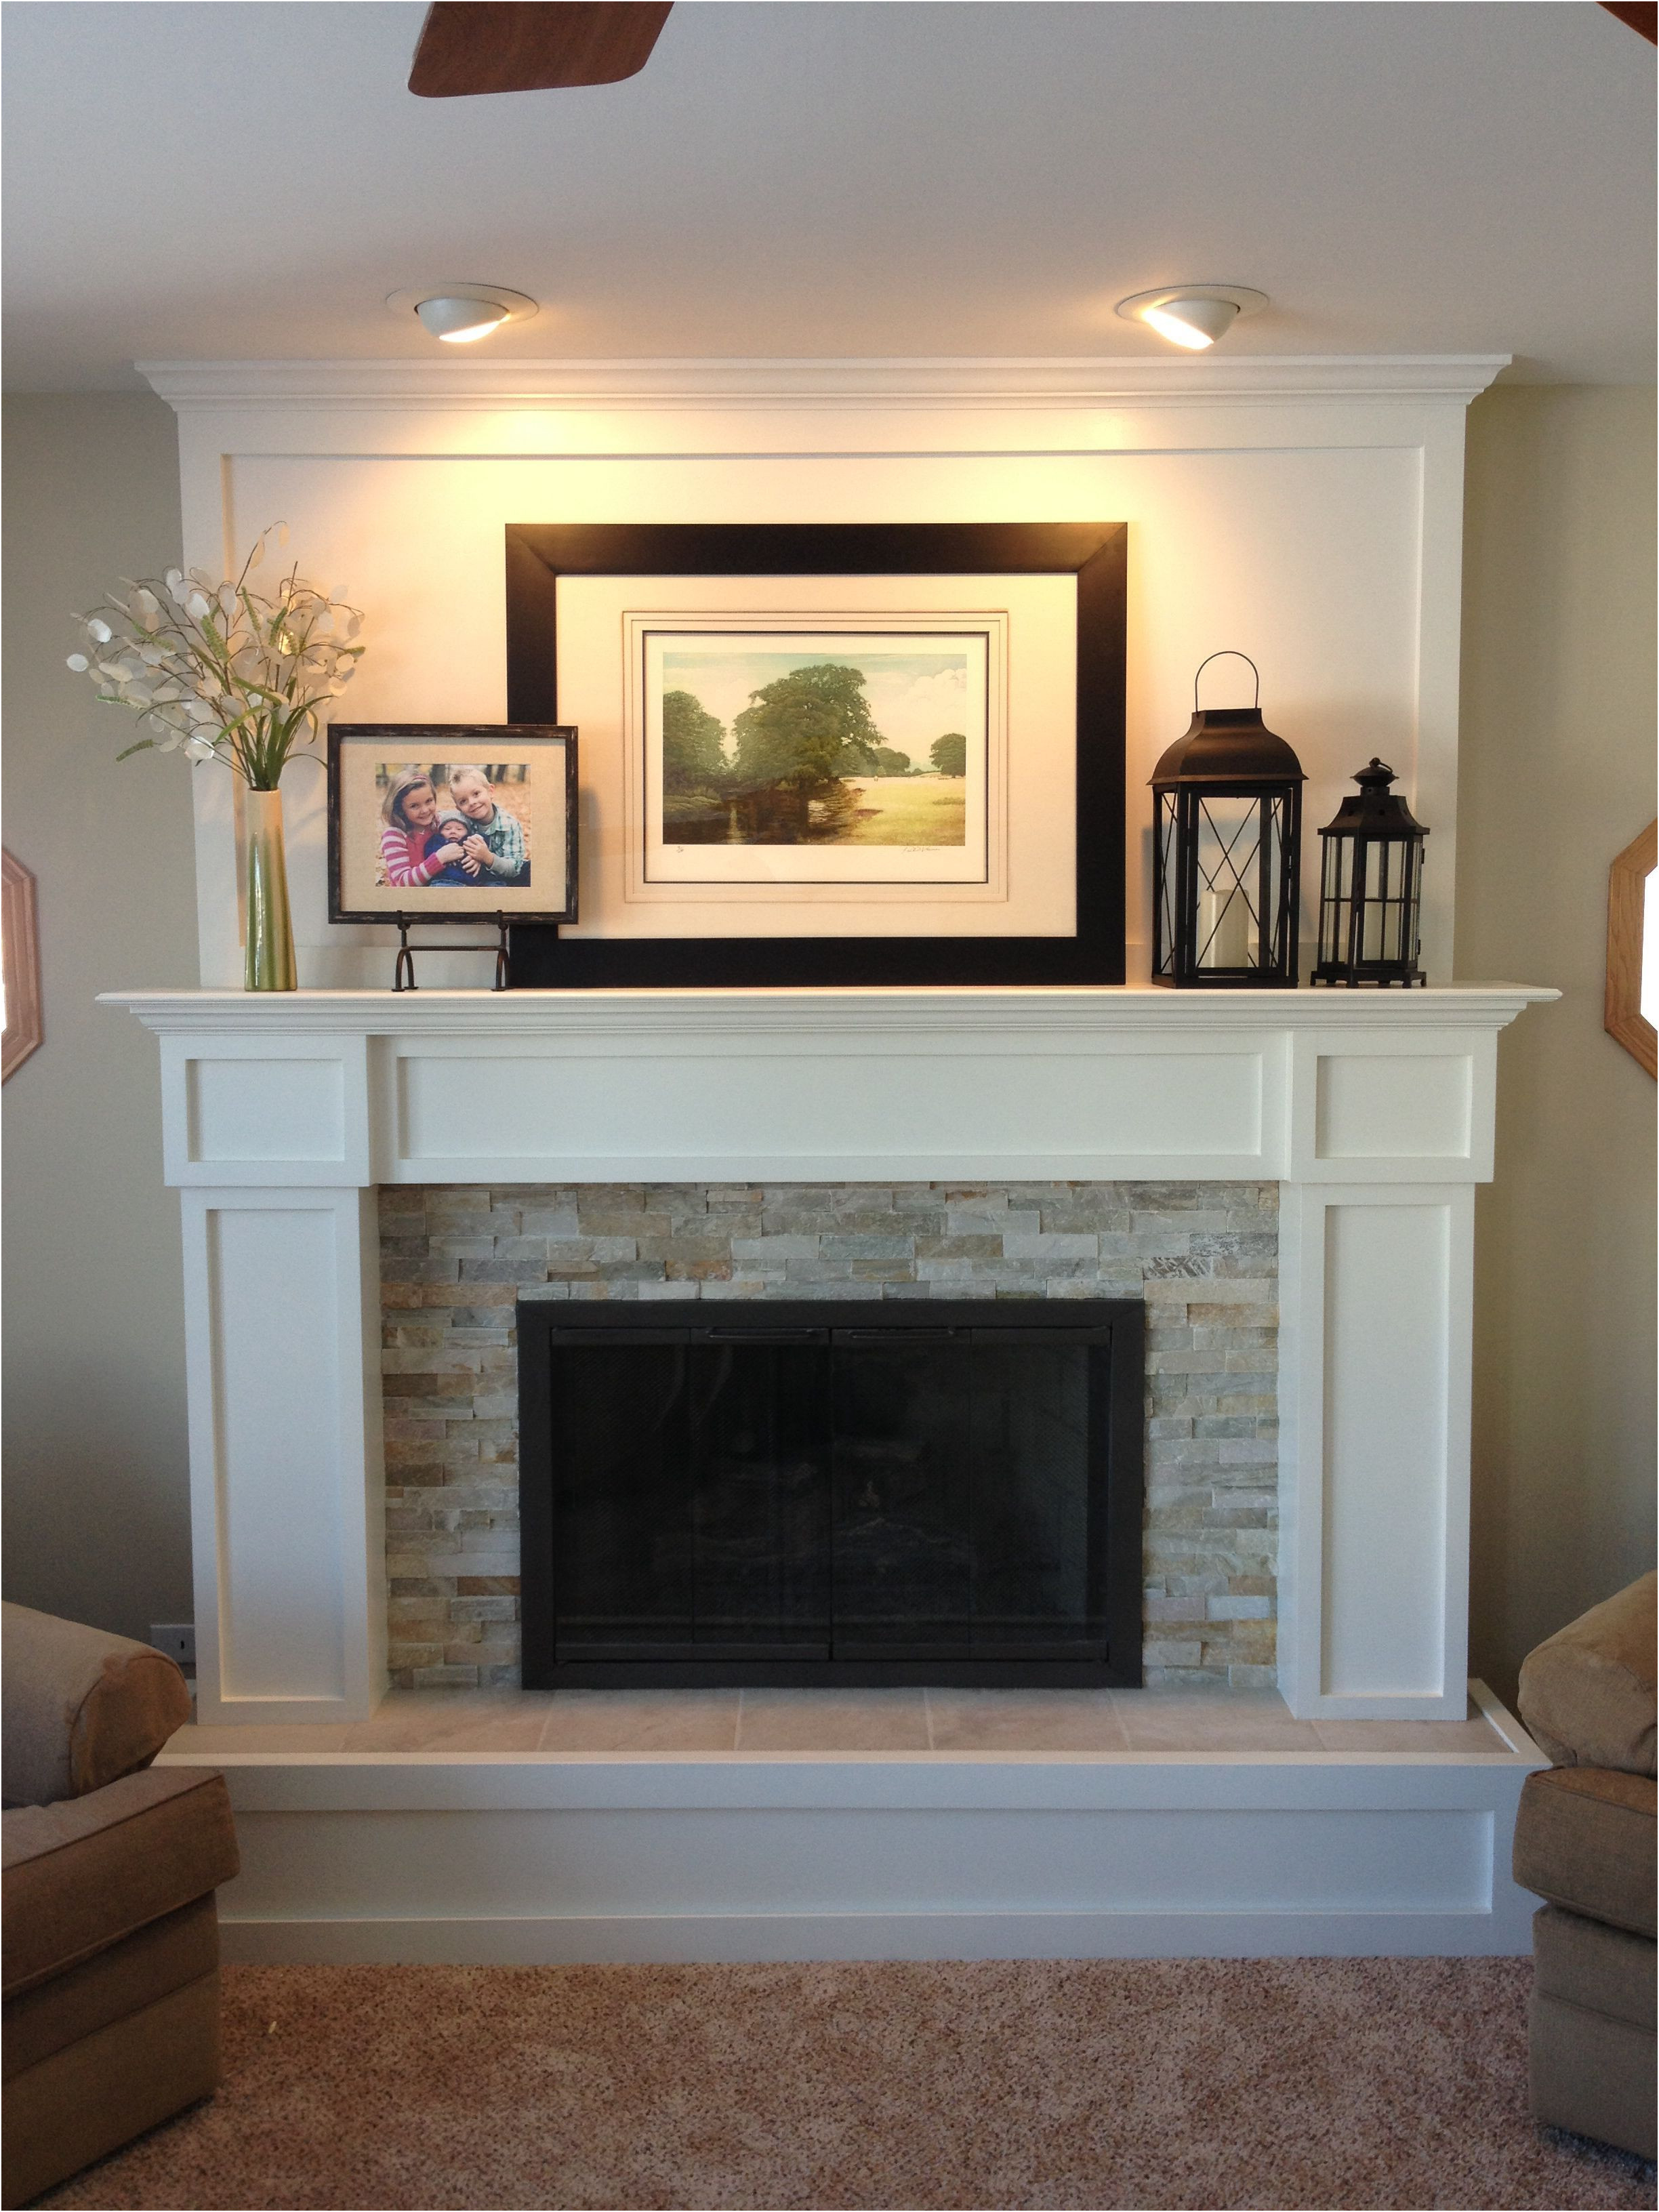 Inspirational Decorating Ideas for the Fireplace Mantel